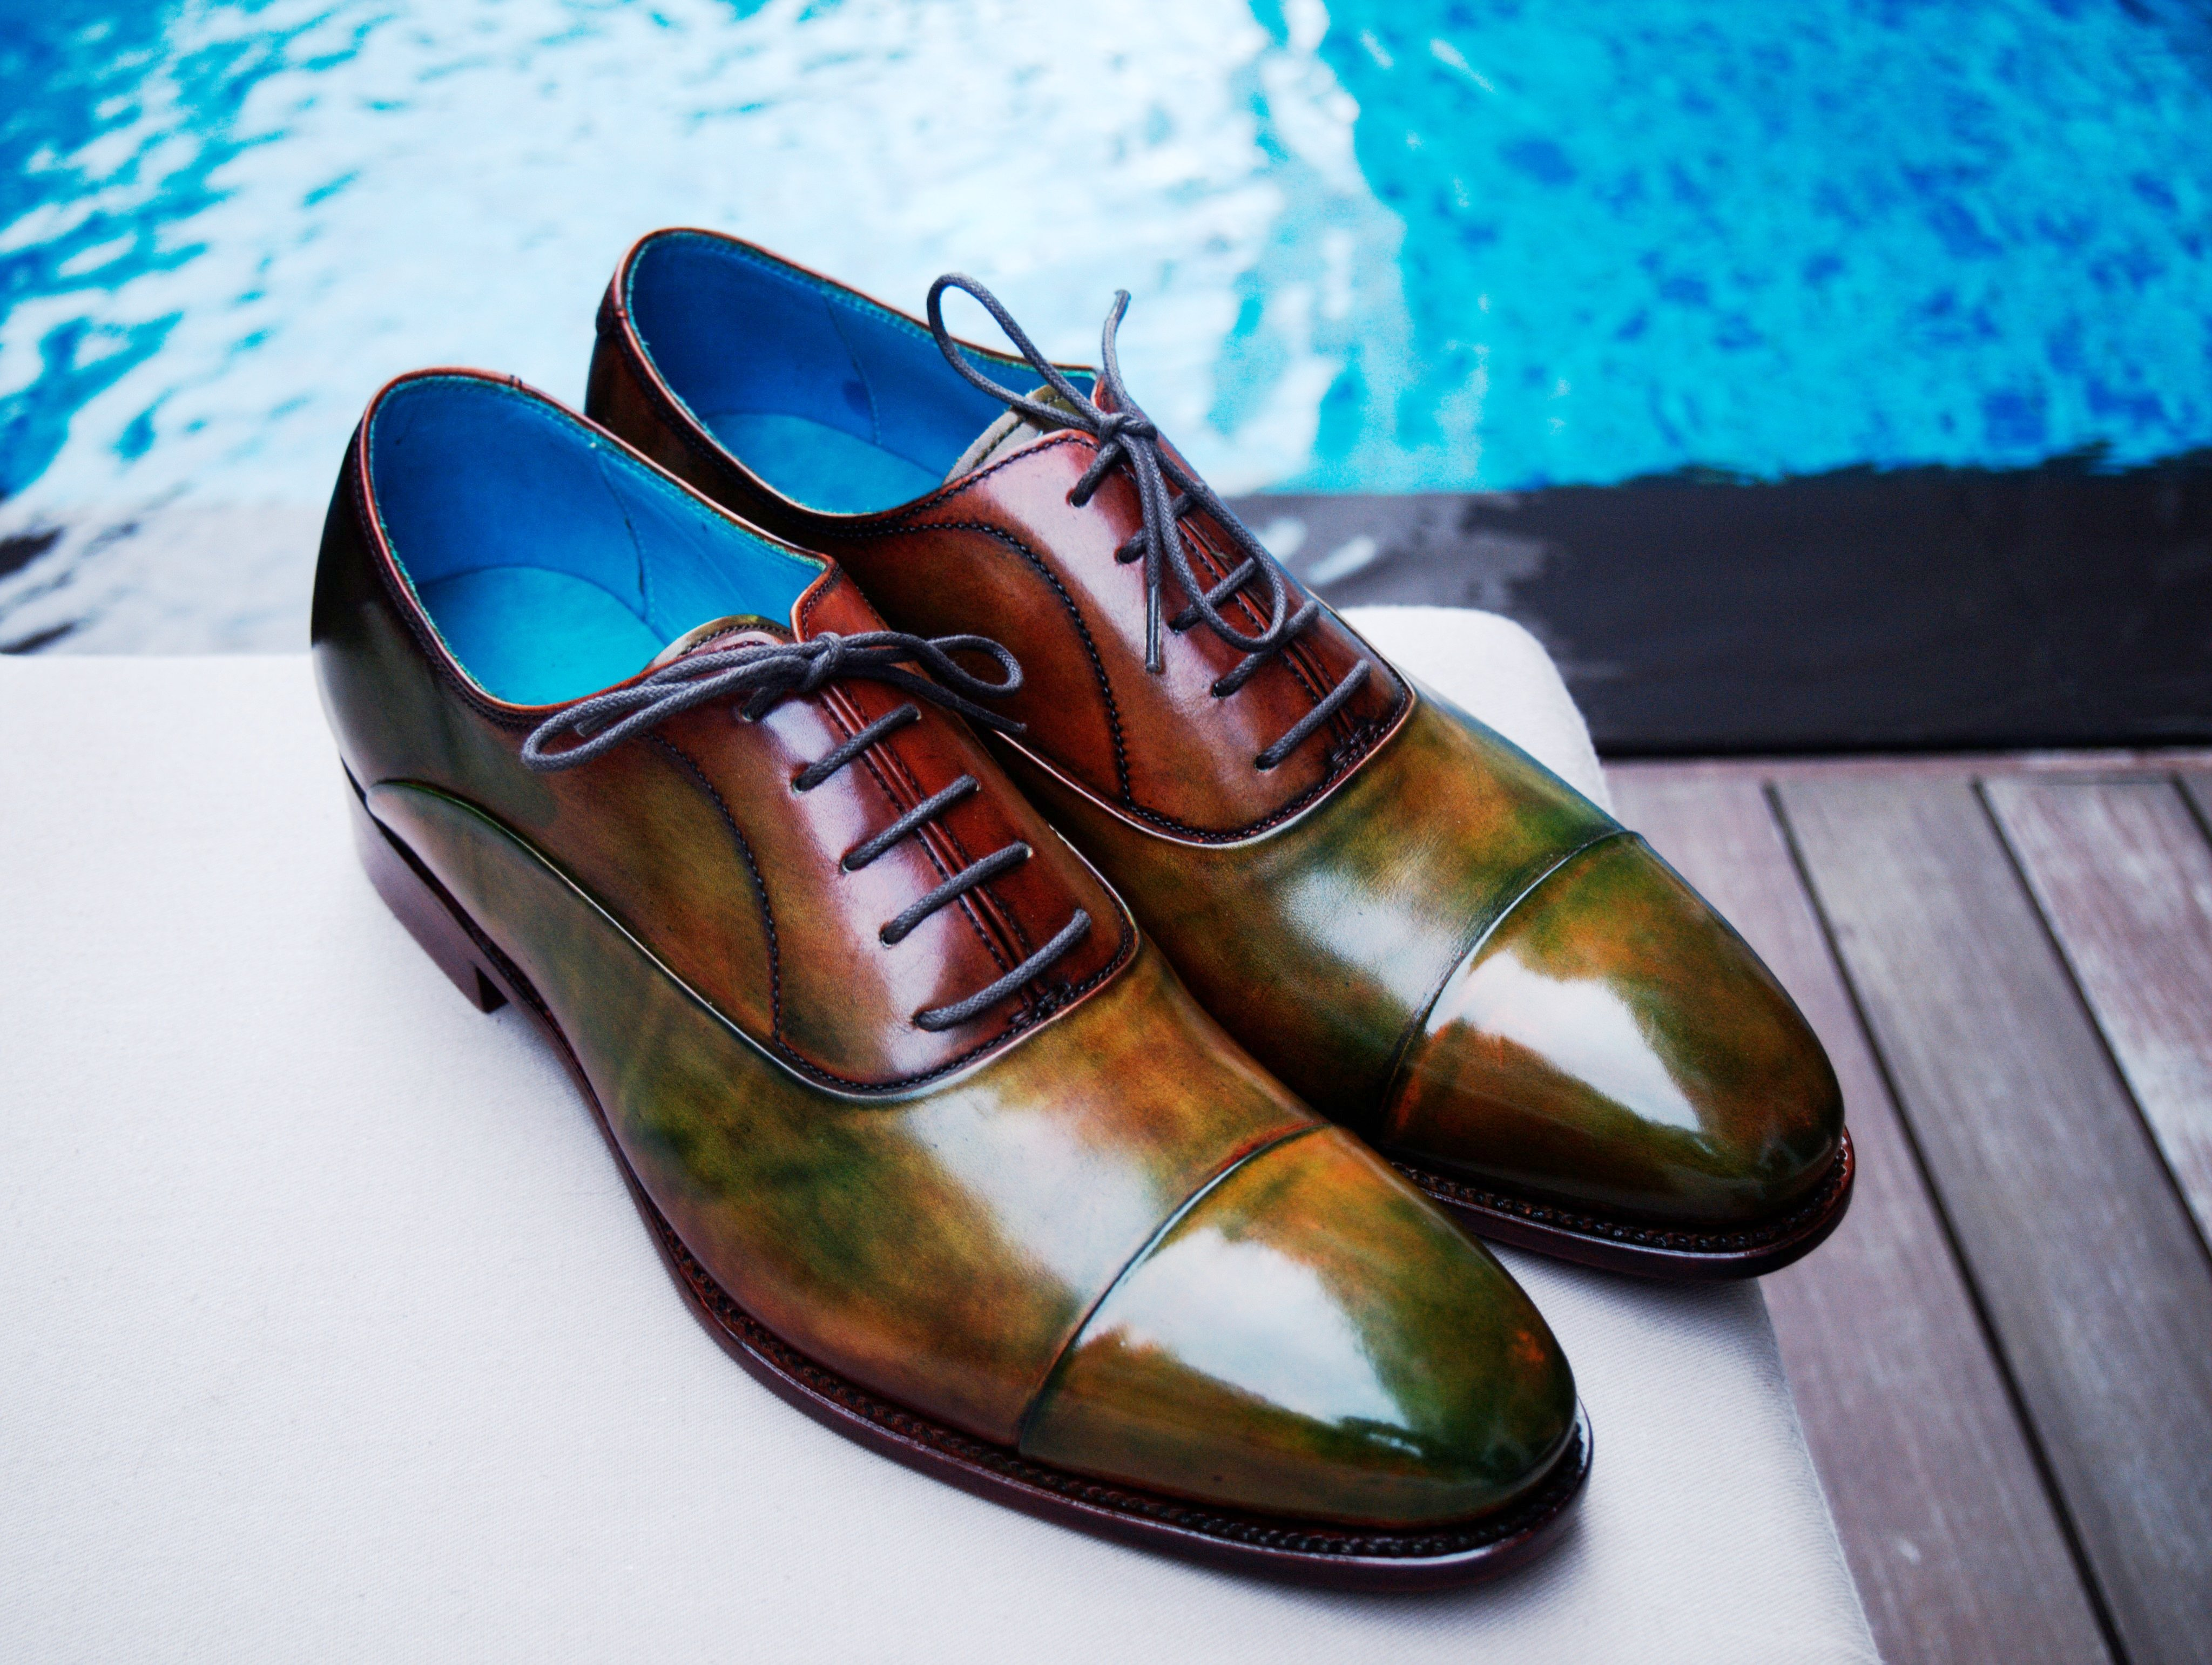 Personalised shoes and leather goods for men